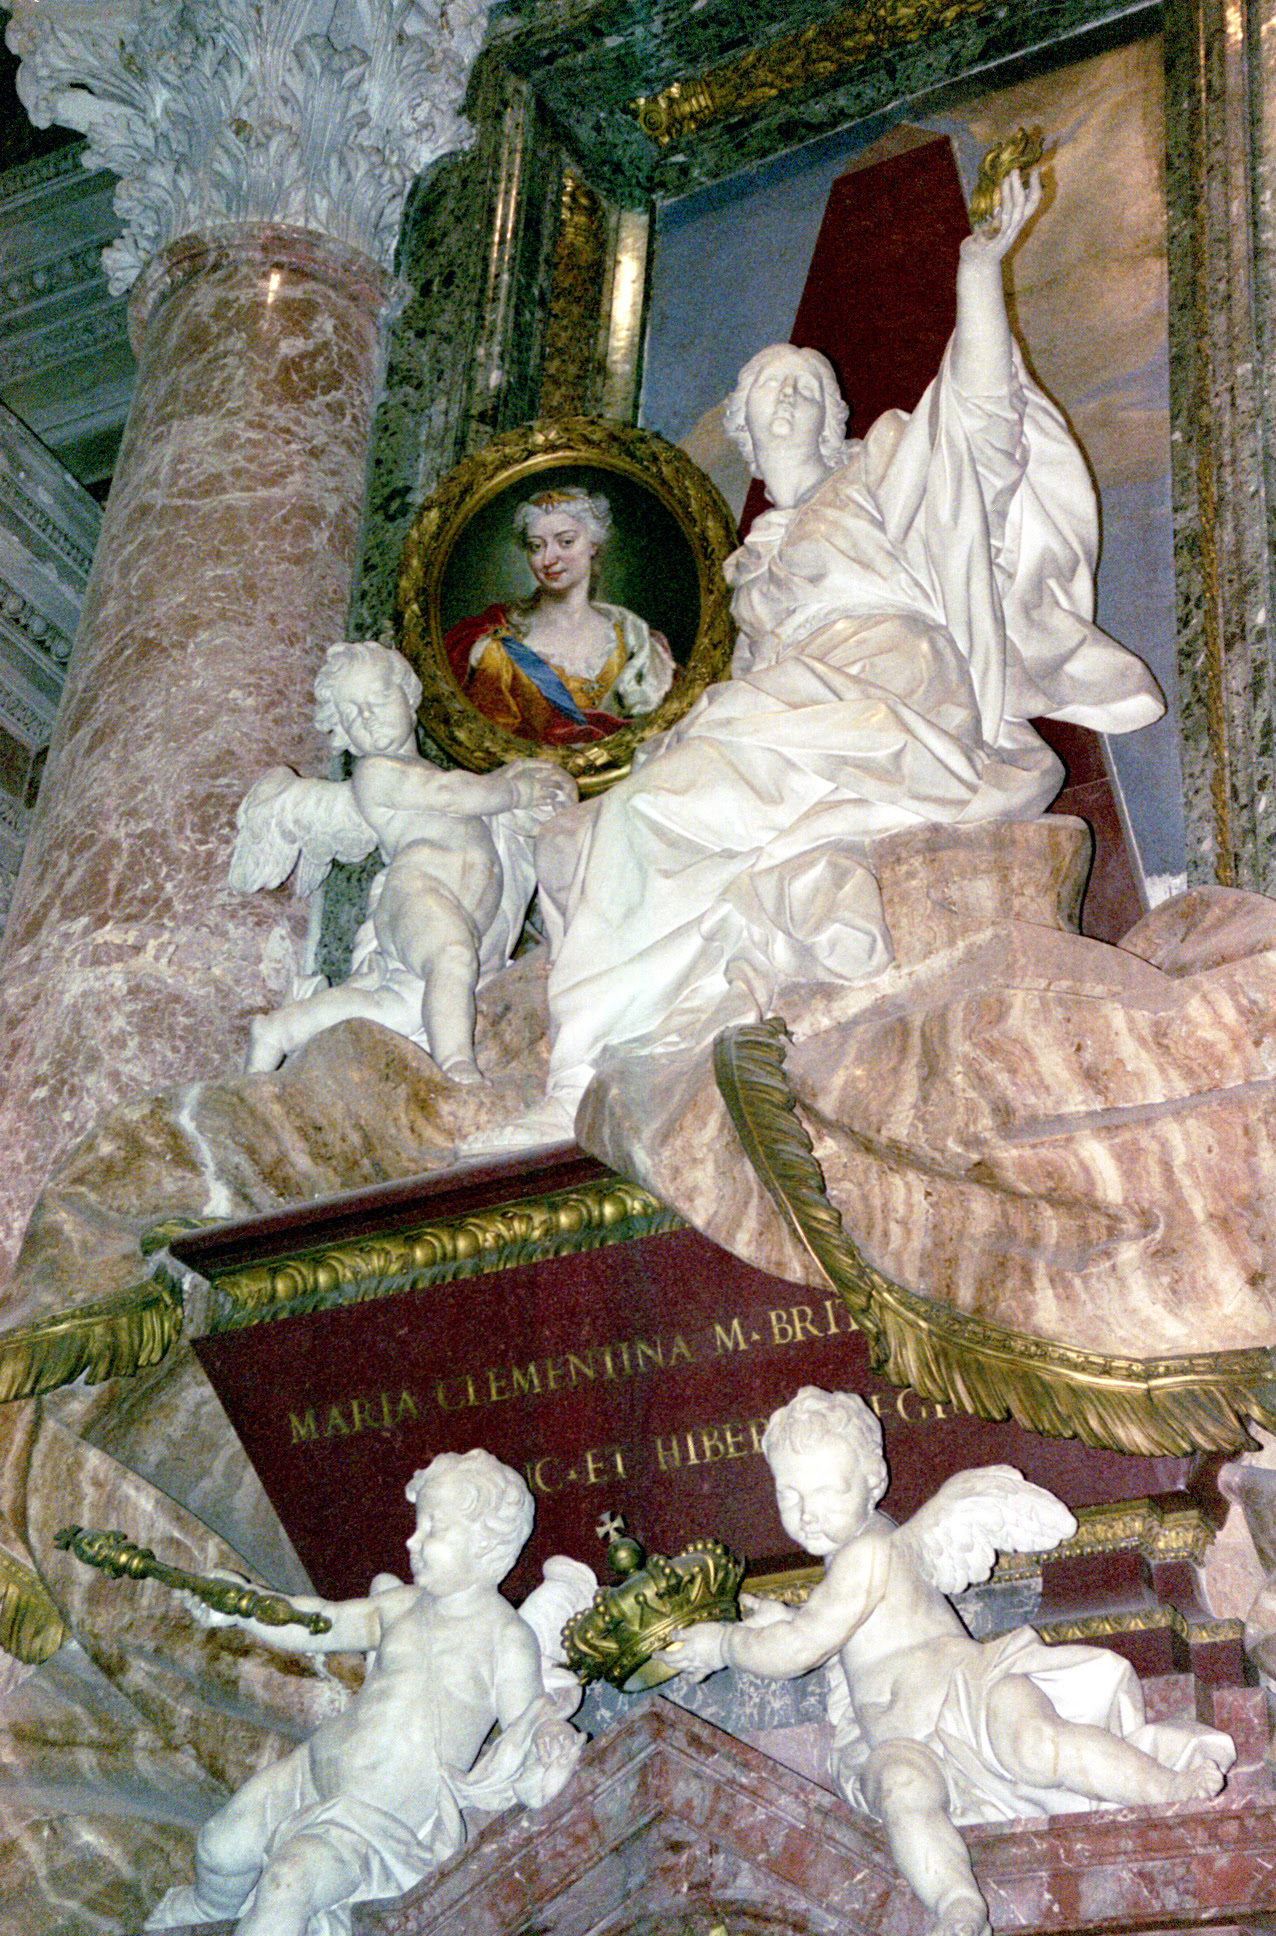 Vatican monument for Queen Maria Clementina